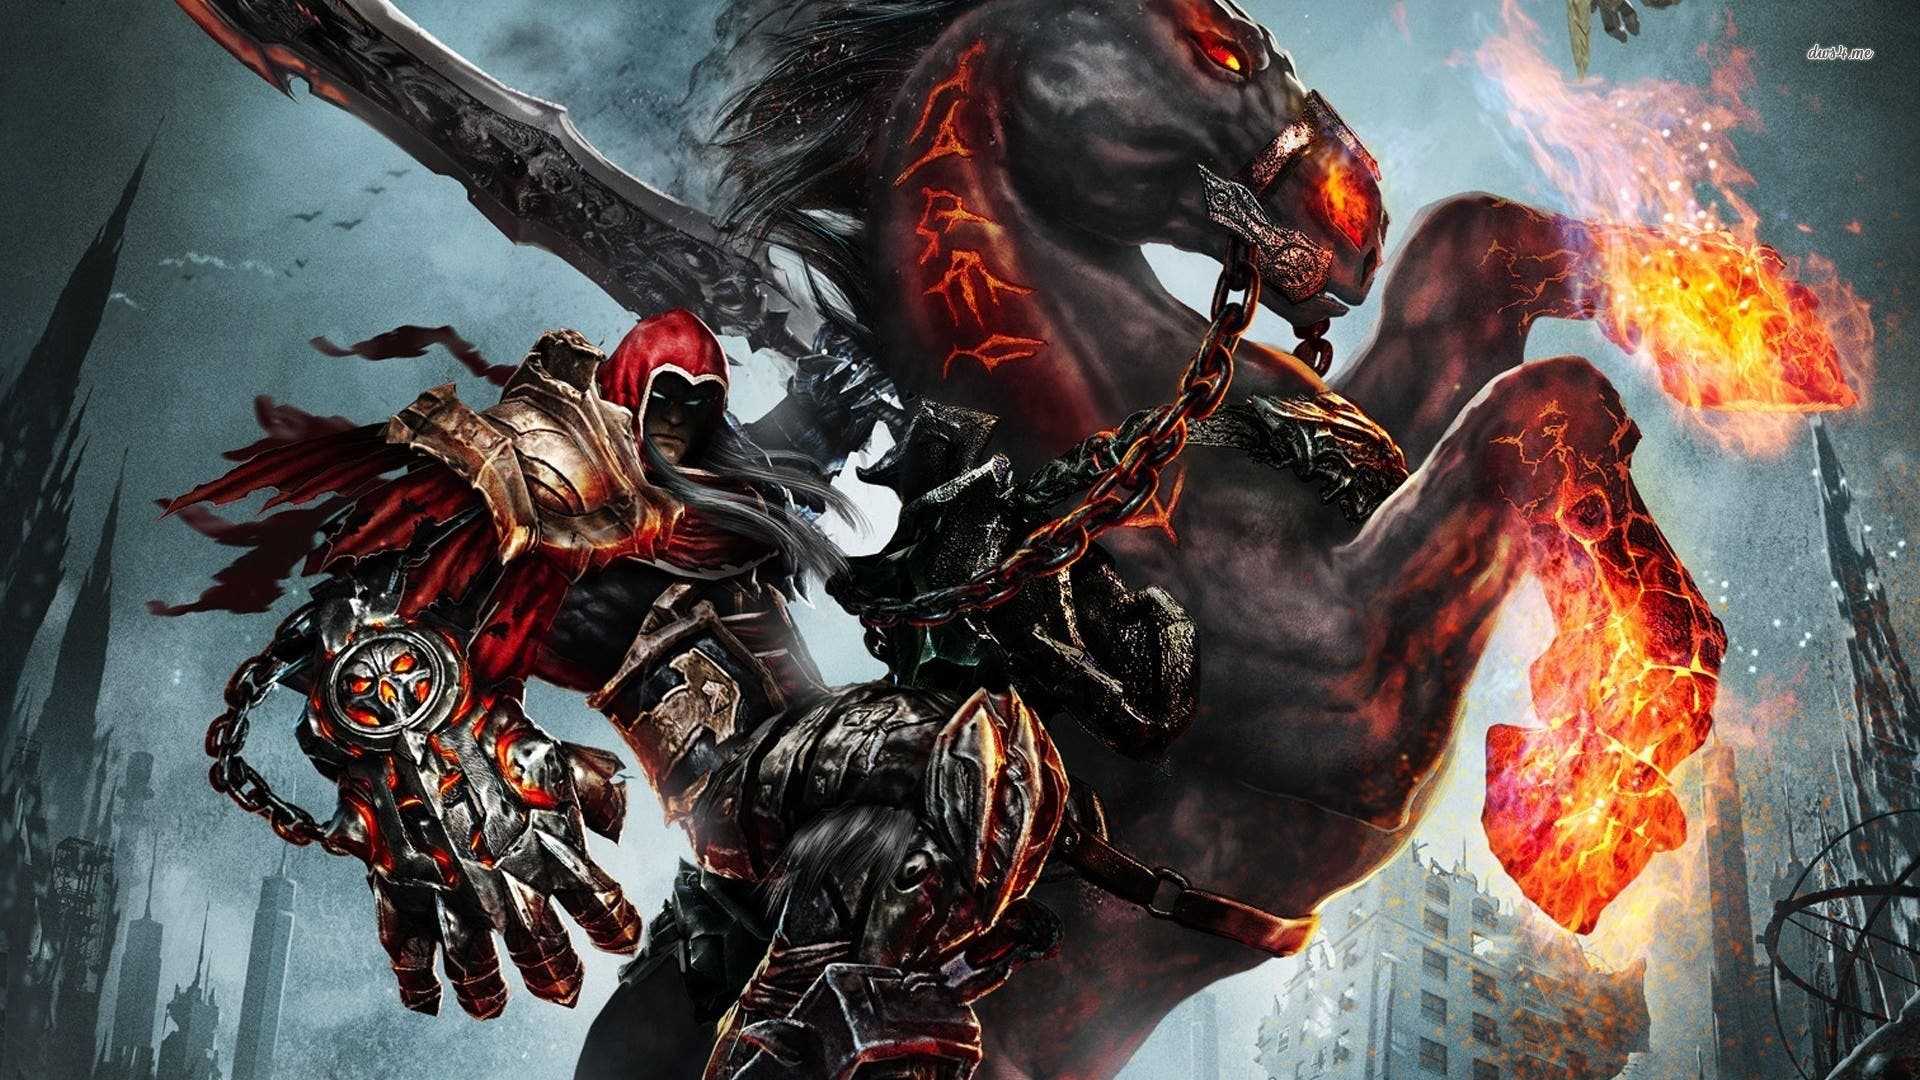 [Act.] Se filtra el anuncio de Darksiders: Warmastered Edition para Nintendo Switch